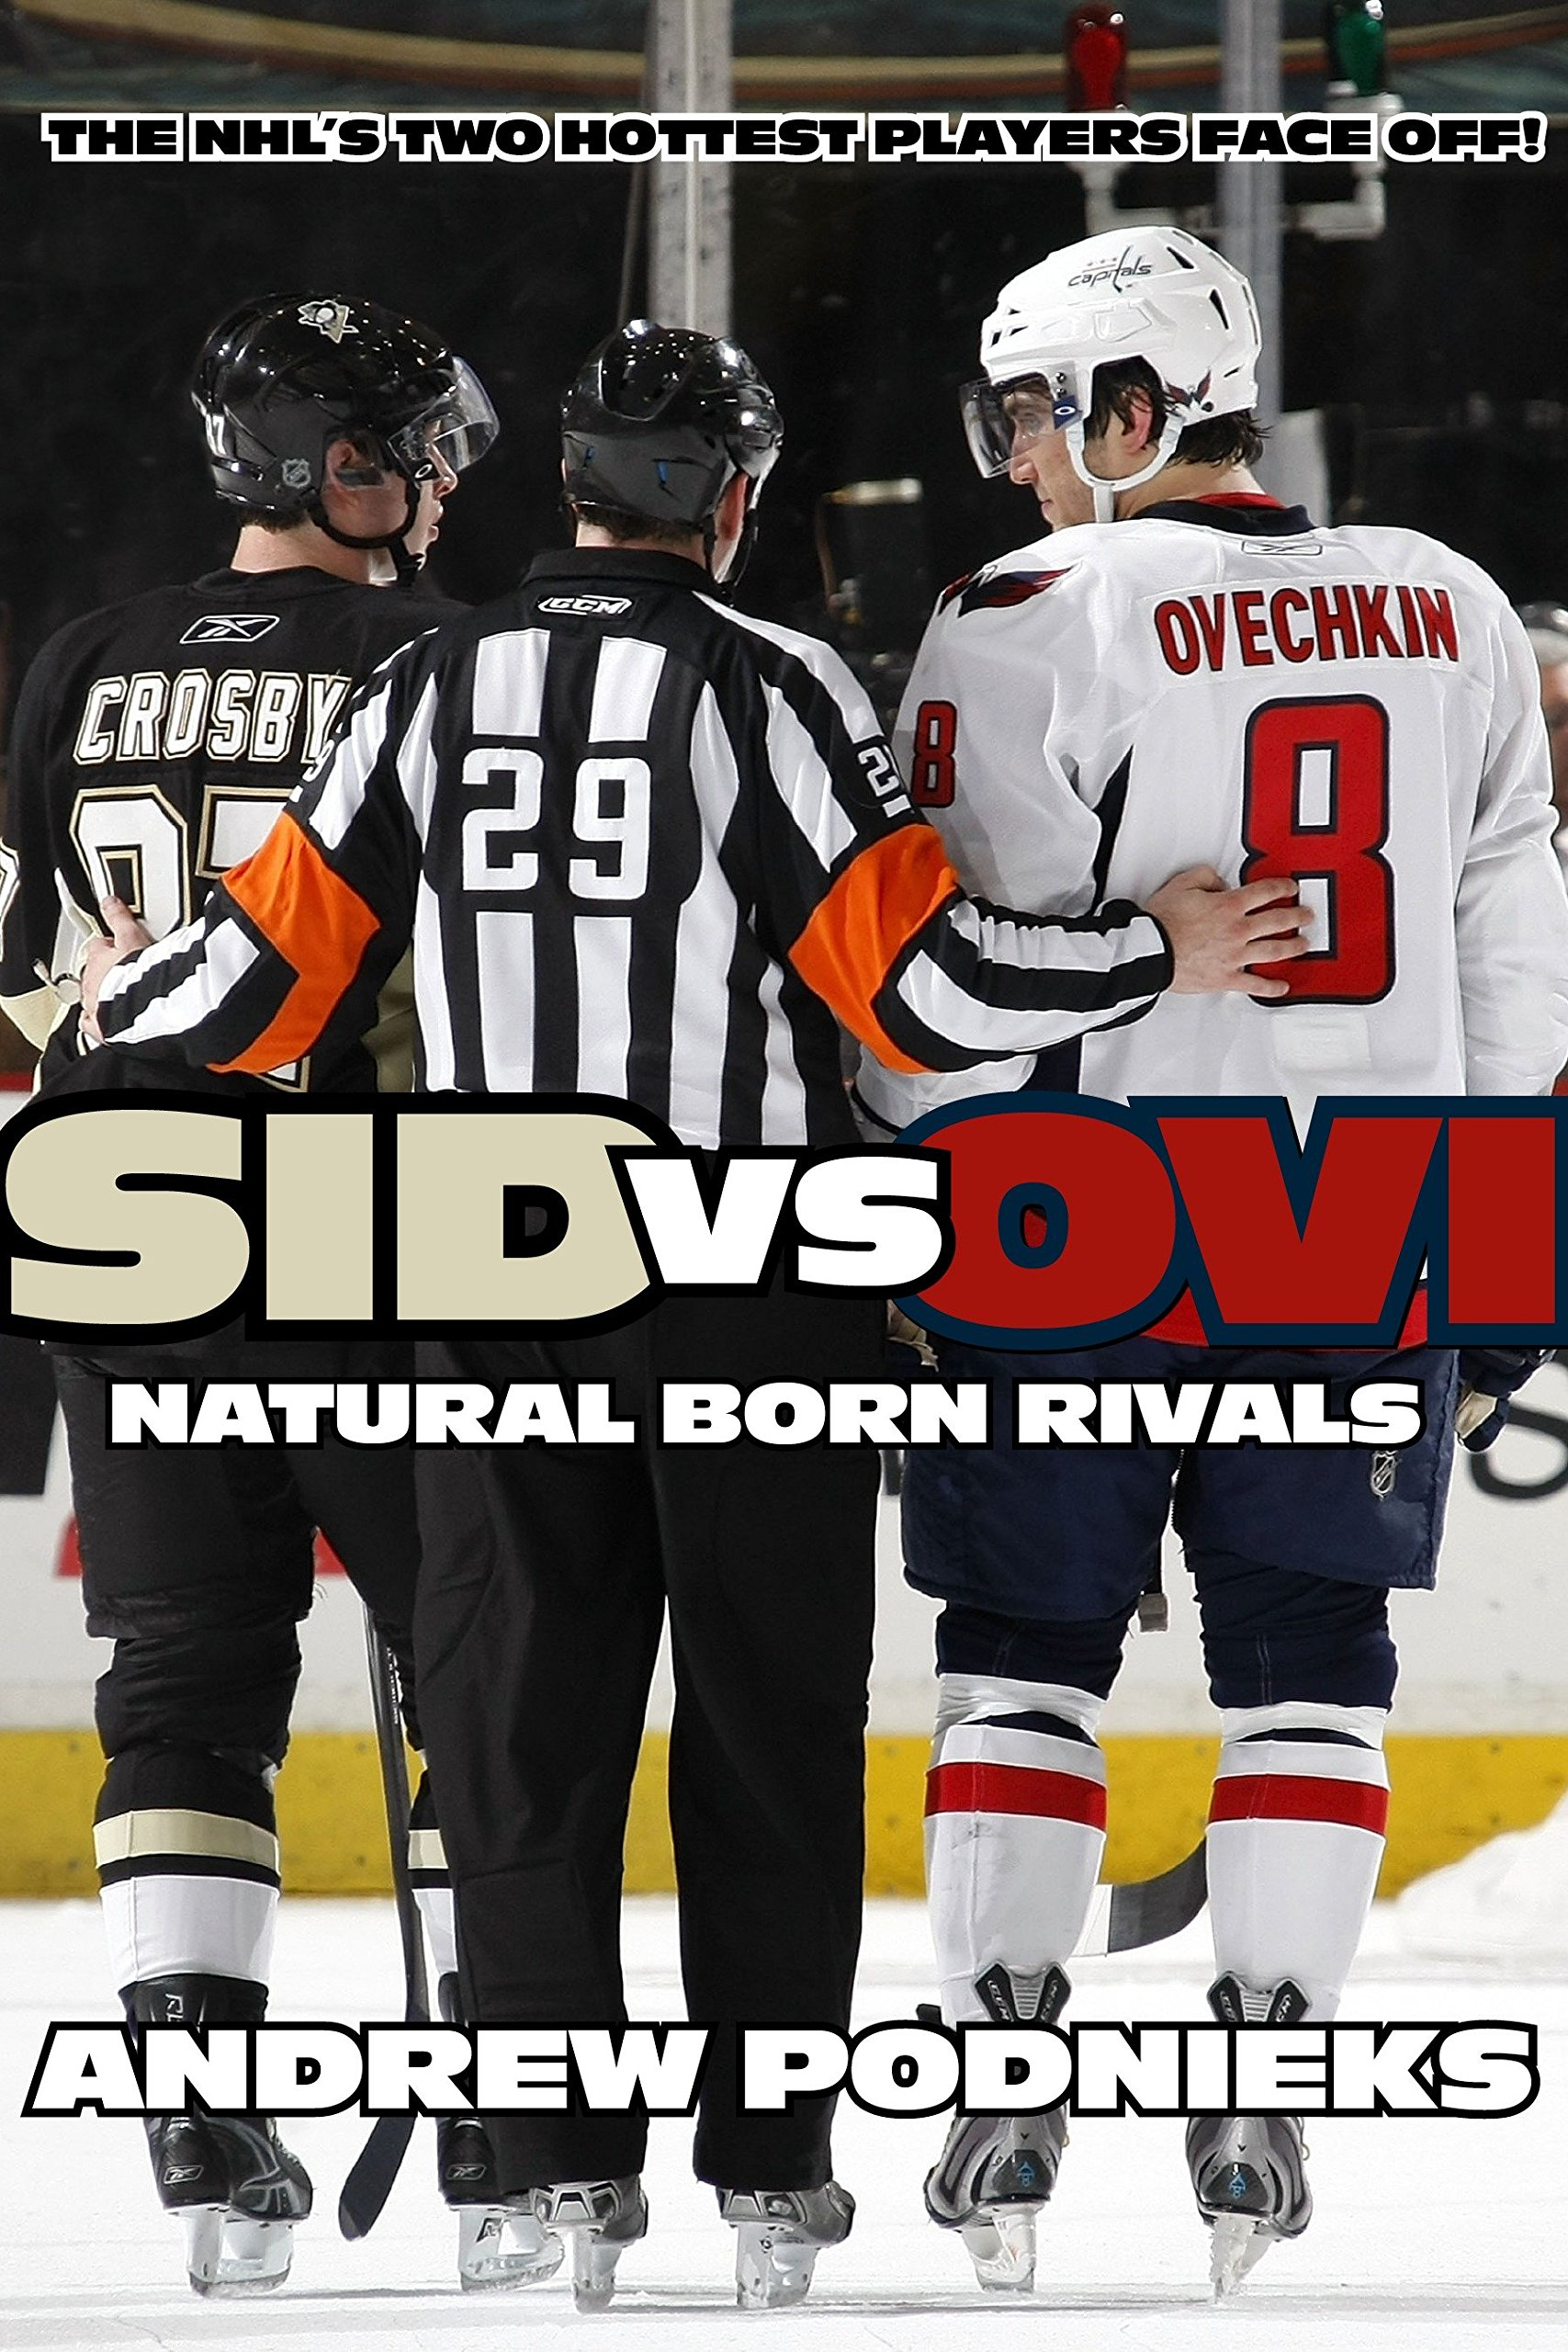 Ovi  Crosby and Ovechkin - Natural Born Rivals Paperback – October 25 0d3eb92aa